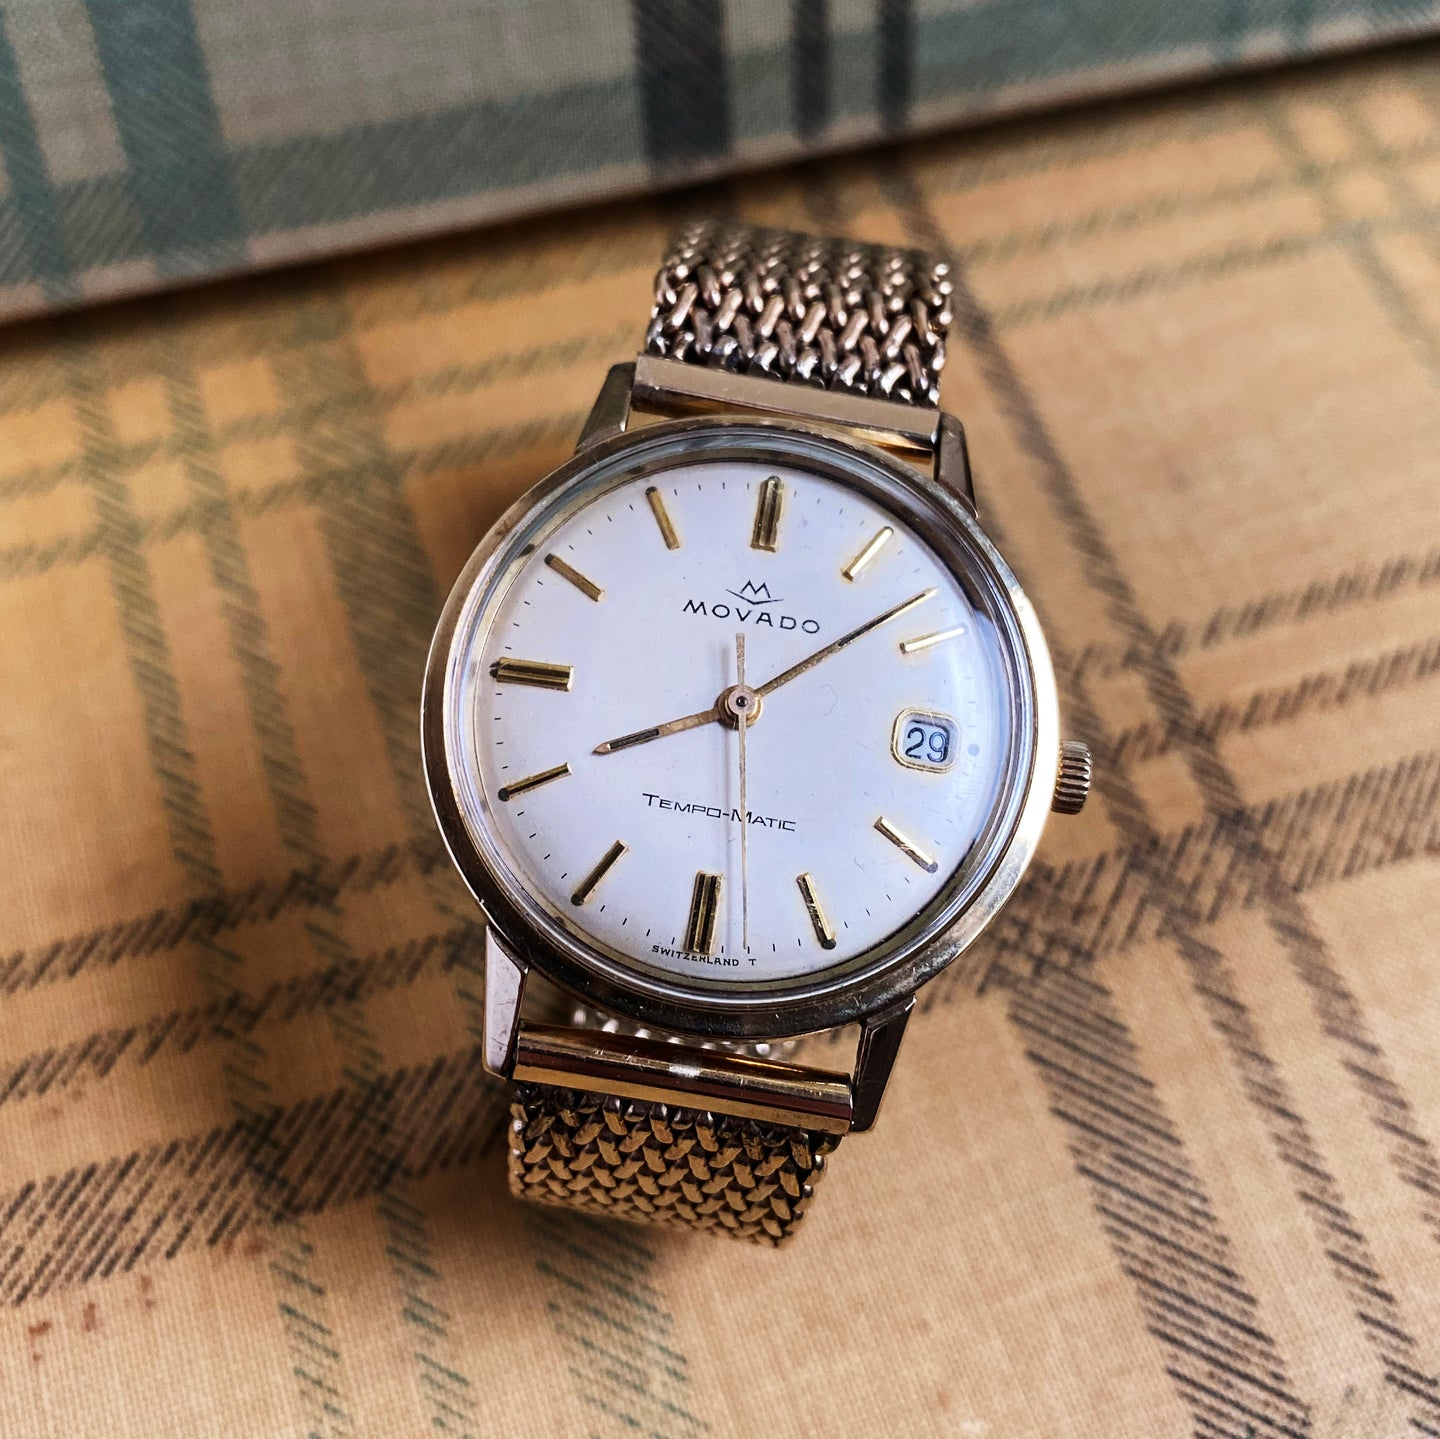 Movado Automatic Watch c1960